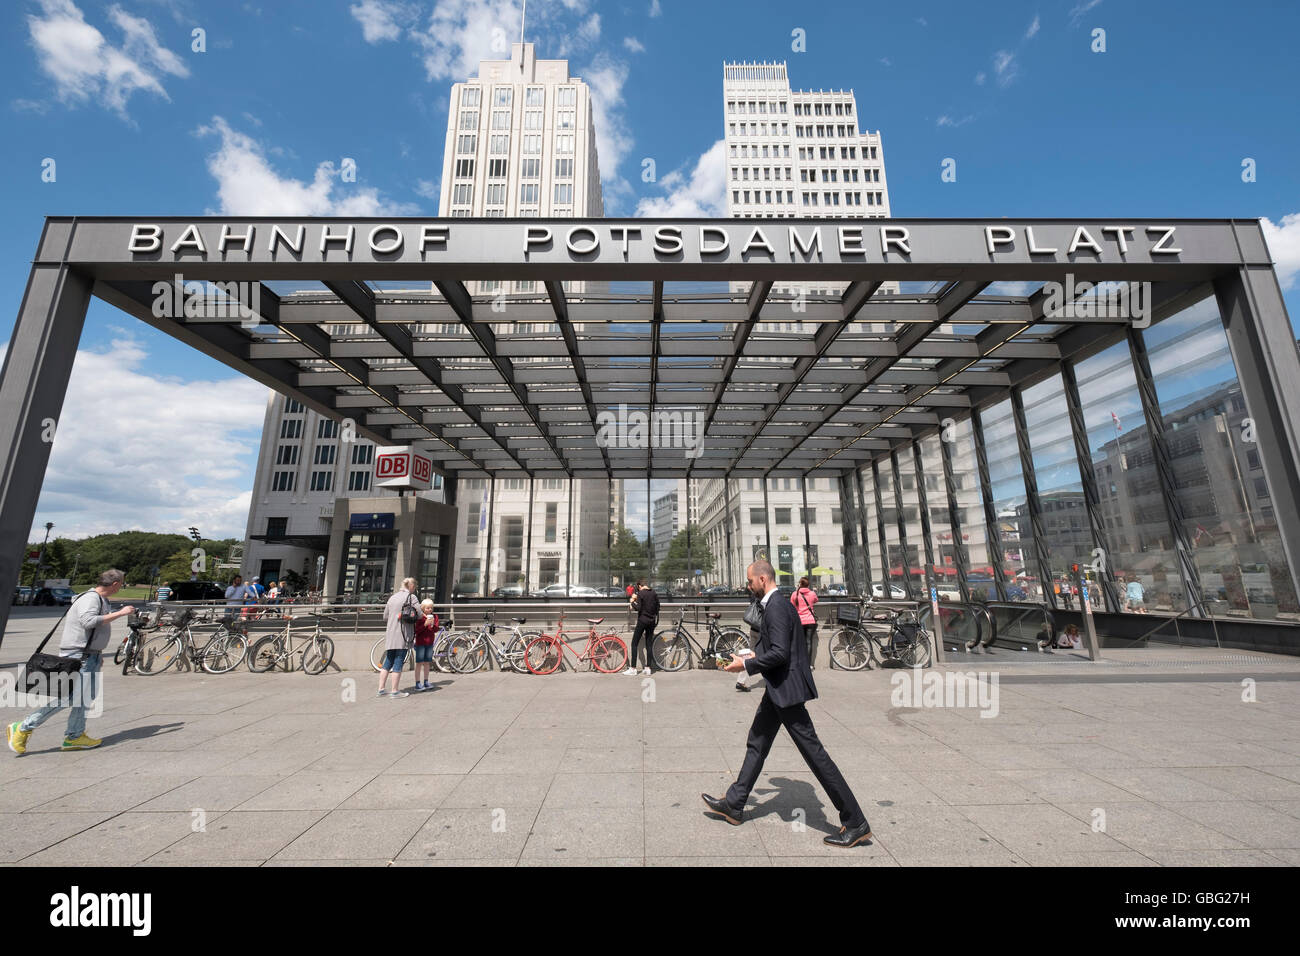 Entrance Potsdamer Platz railway station at Potsdamer Platz in Berlin Germany - Stock Image